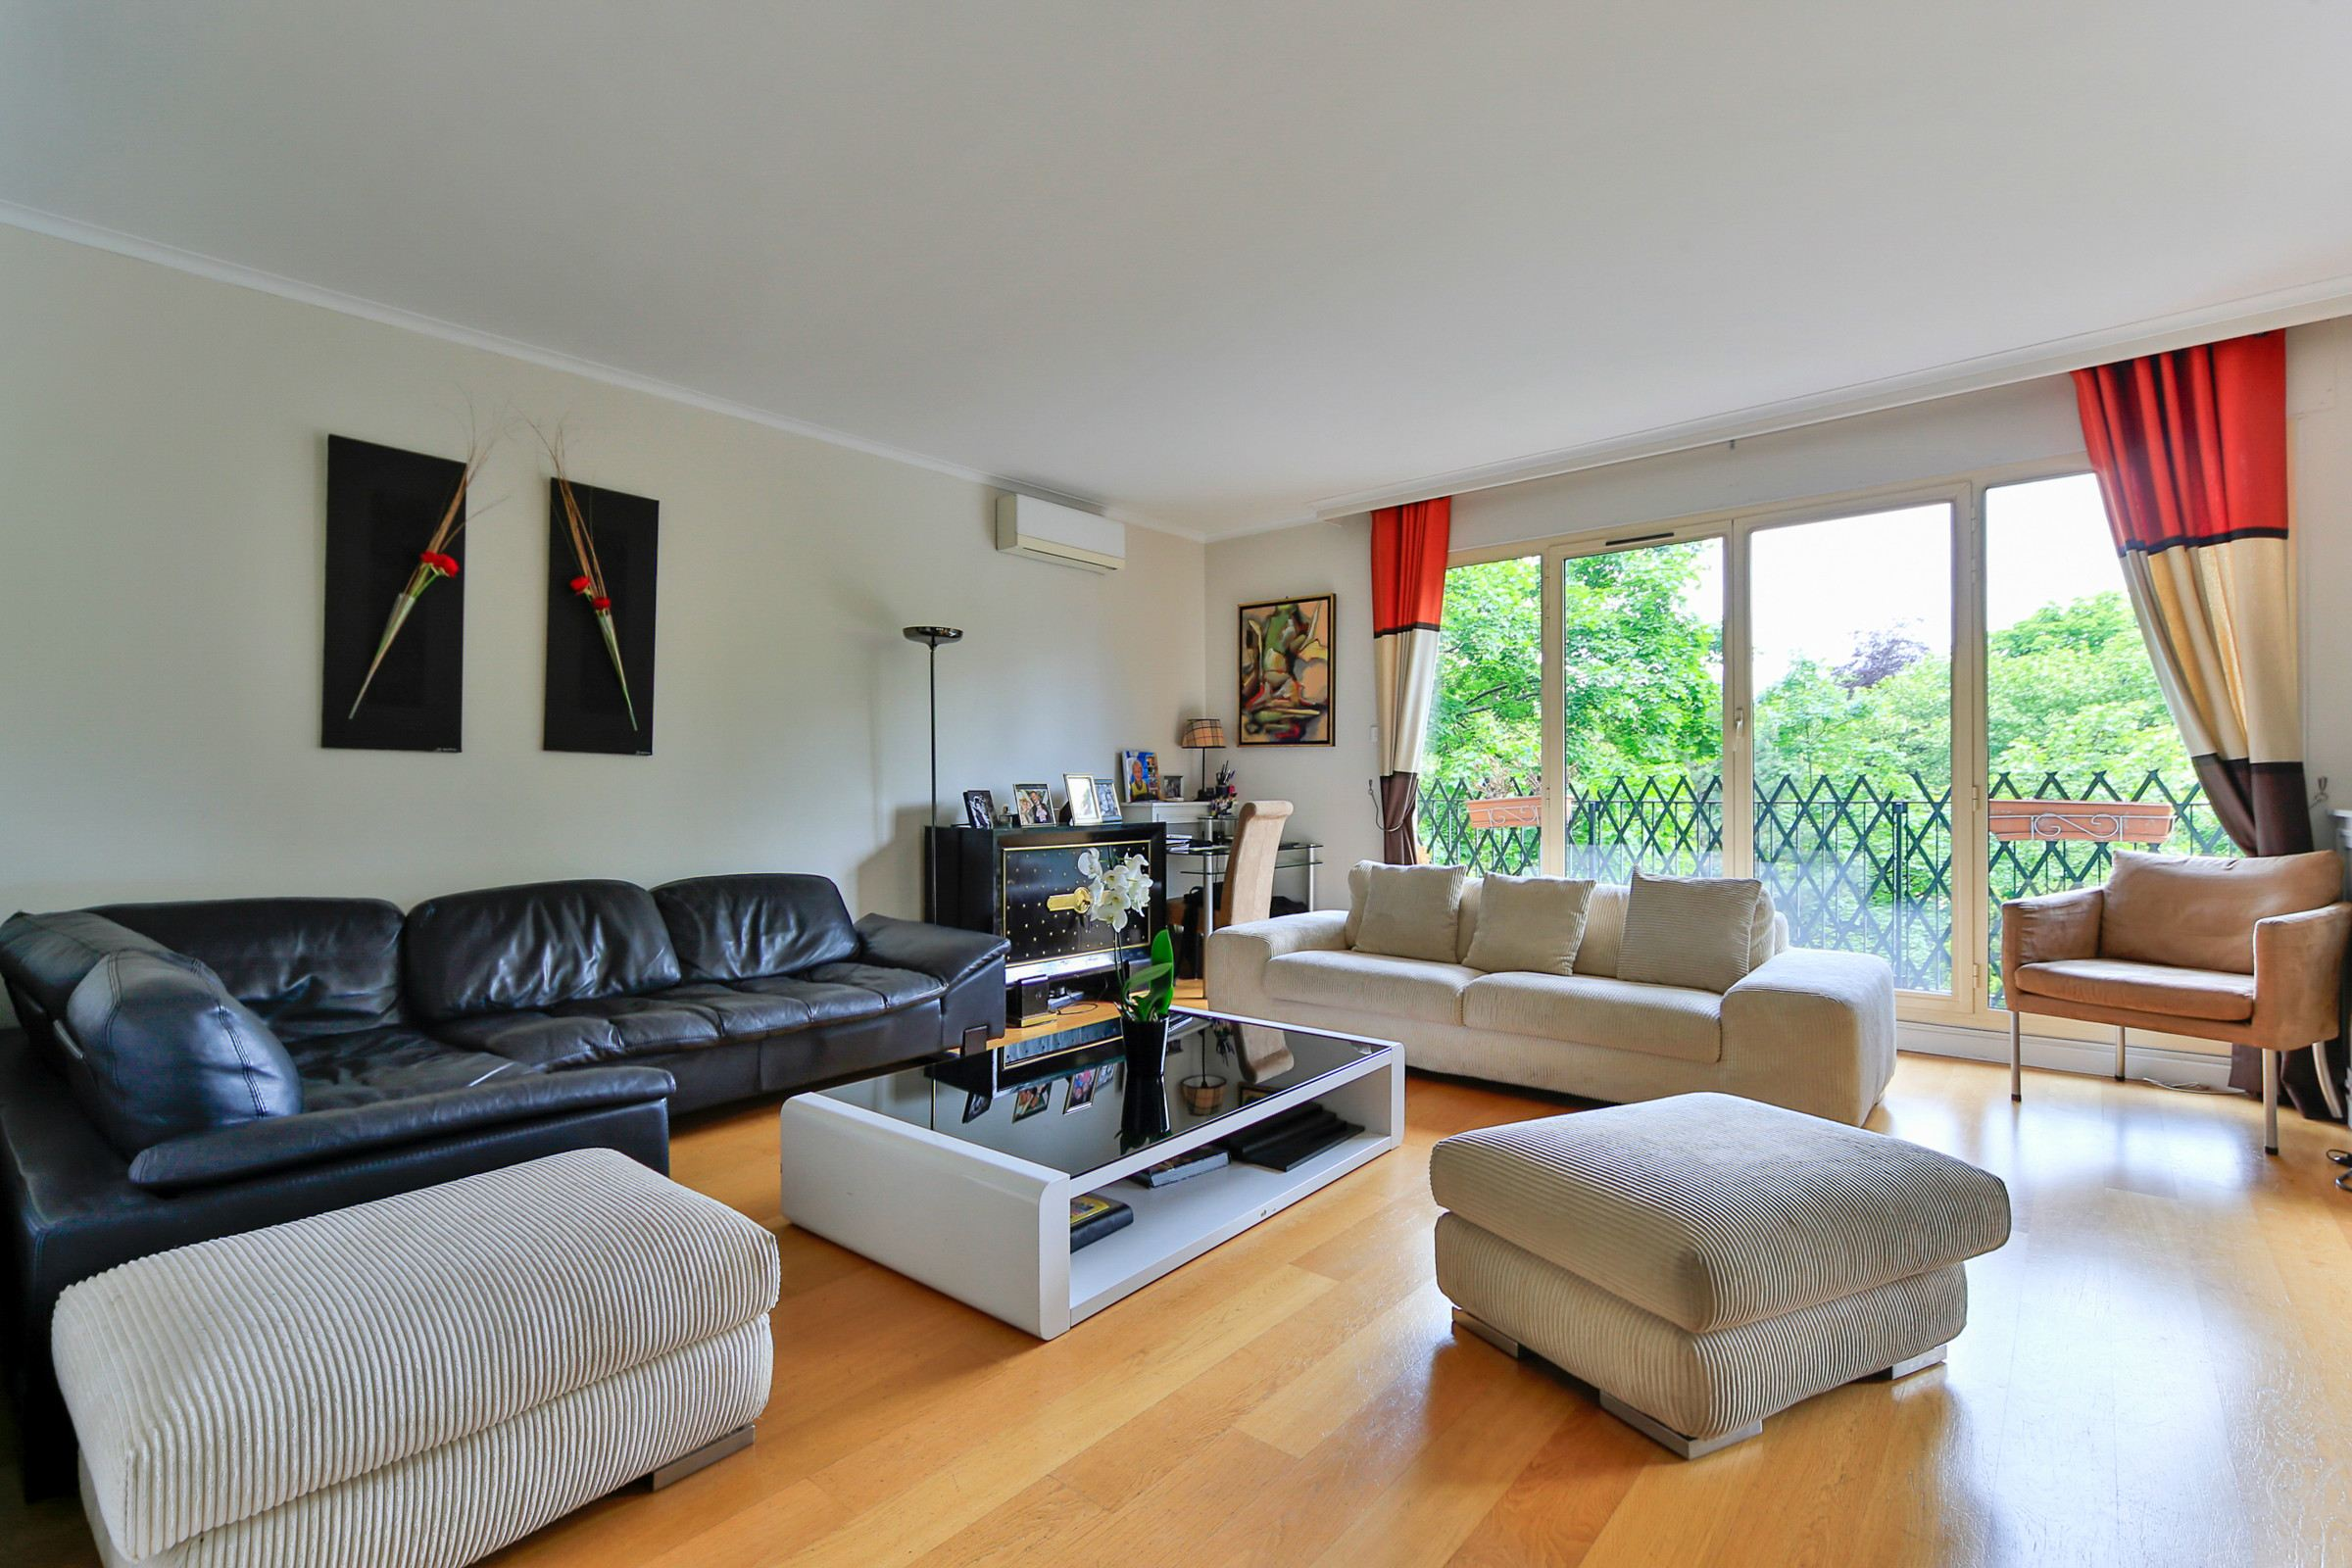 Property For Sale at Neuilly - Chateau. Apartment with a balcony